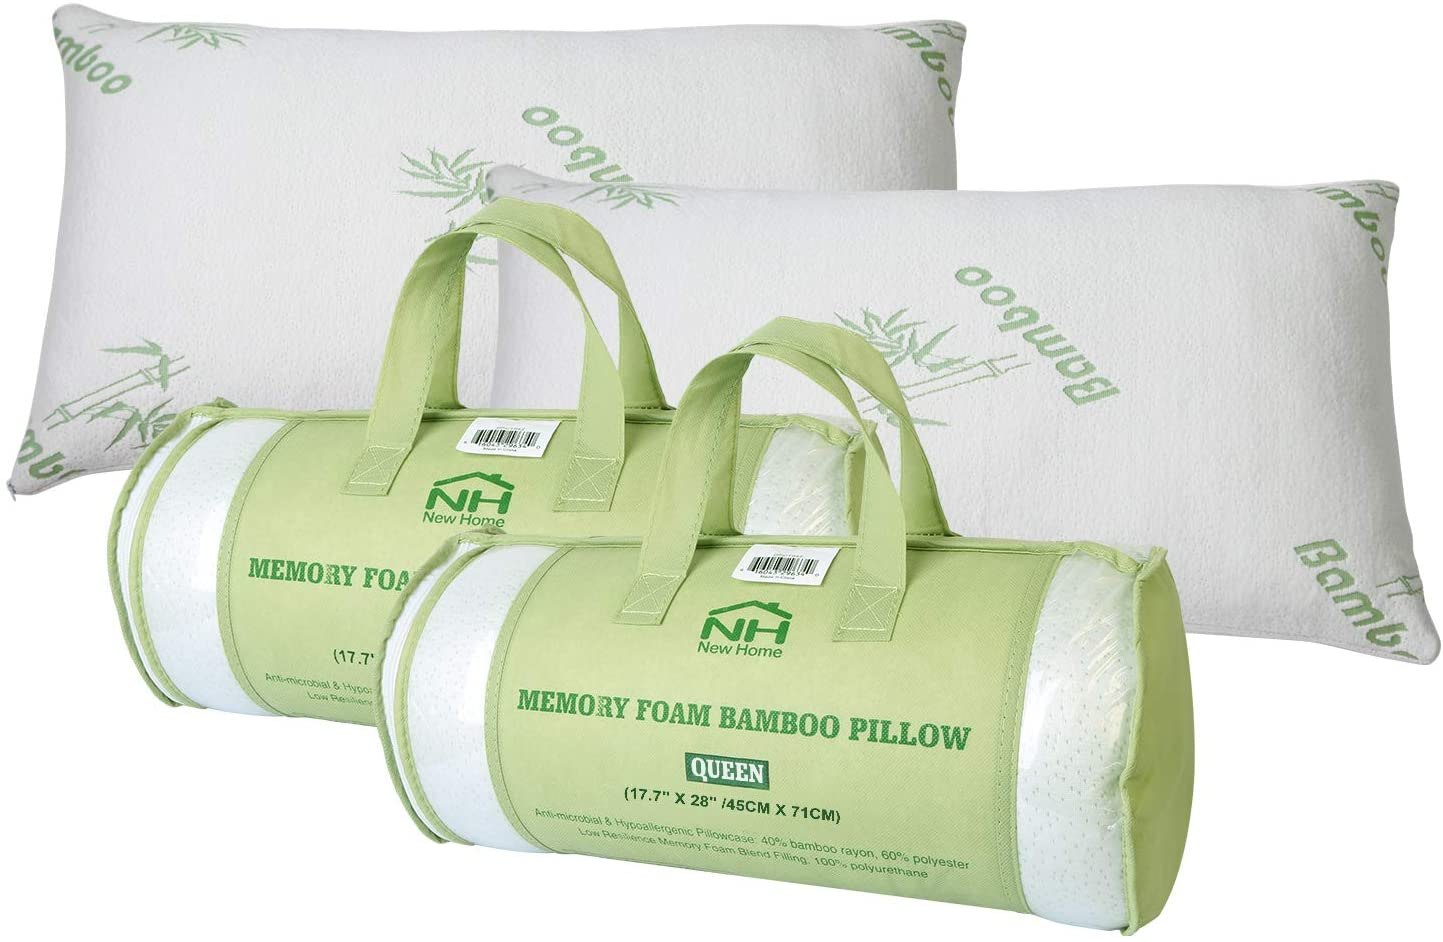 iMounTEK Bamboo Rayon Breathable Hypoallergenic Memory Foam Pillow with Washable Pillow Case, Premium Pillows for Sleeping – Back/Stomach/Side Sleeper, Bamboo Cooling Bed Pillows (Queen Size)(2-Pack)